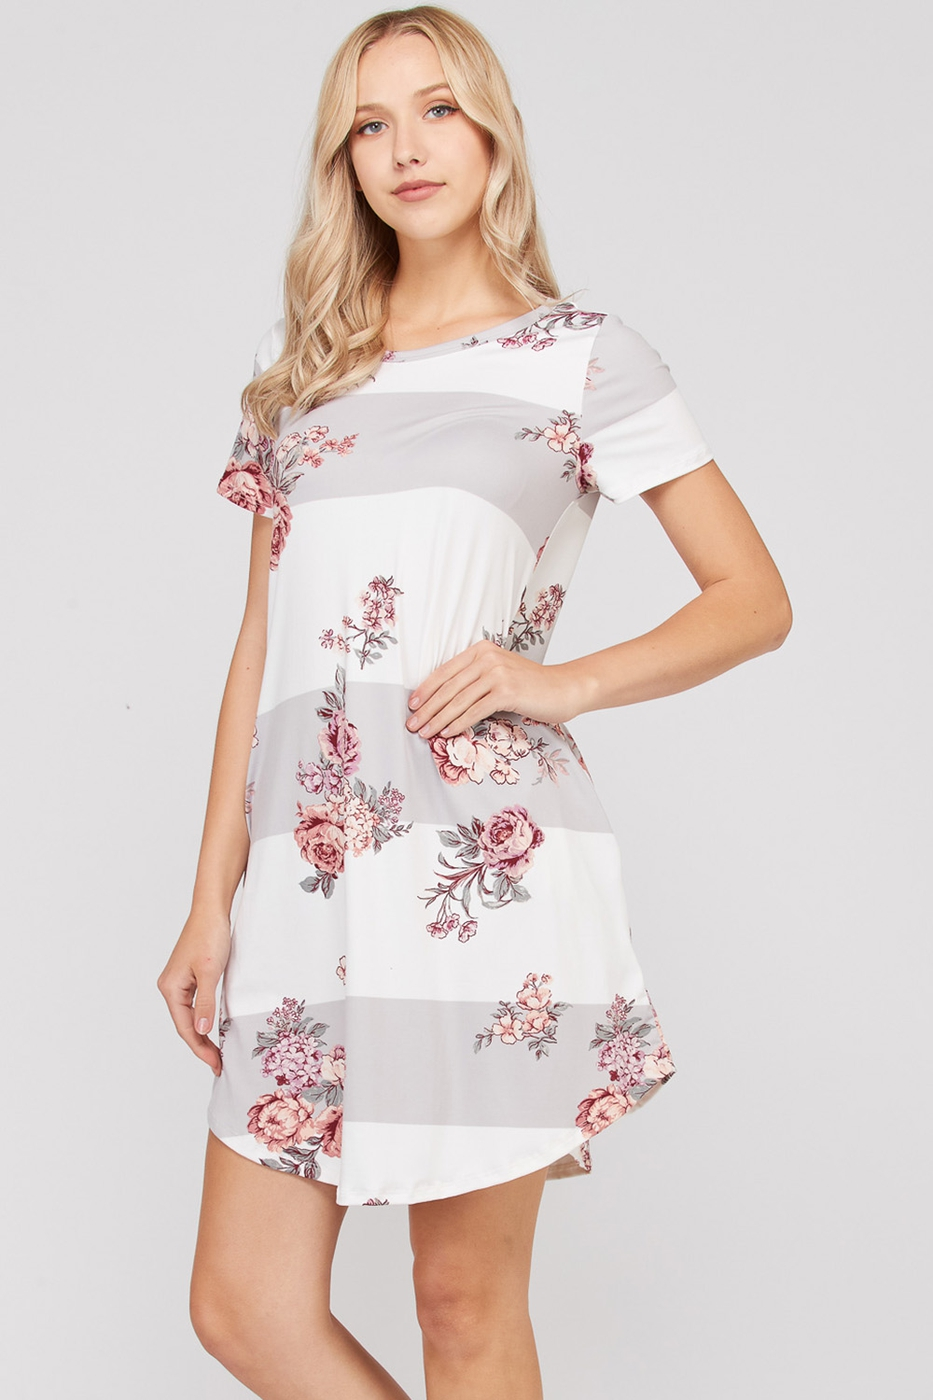 85a3ebe97ec Block and floral dress with side pockets - Ivy and Pearl Online Boutique